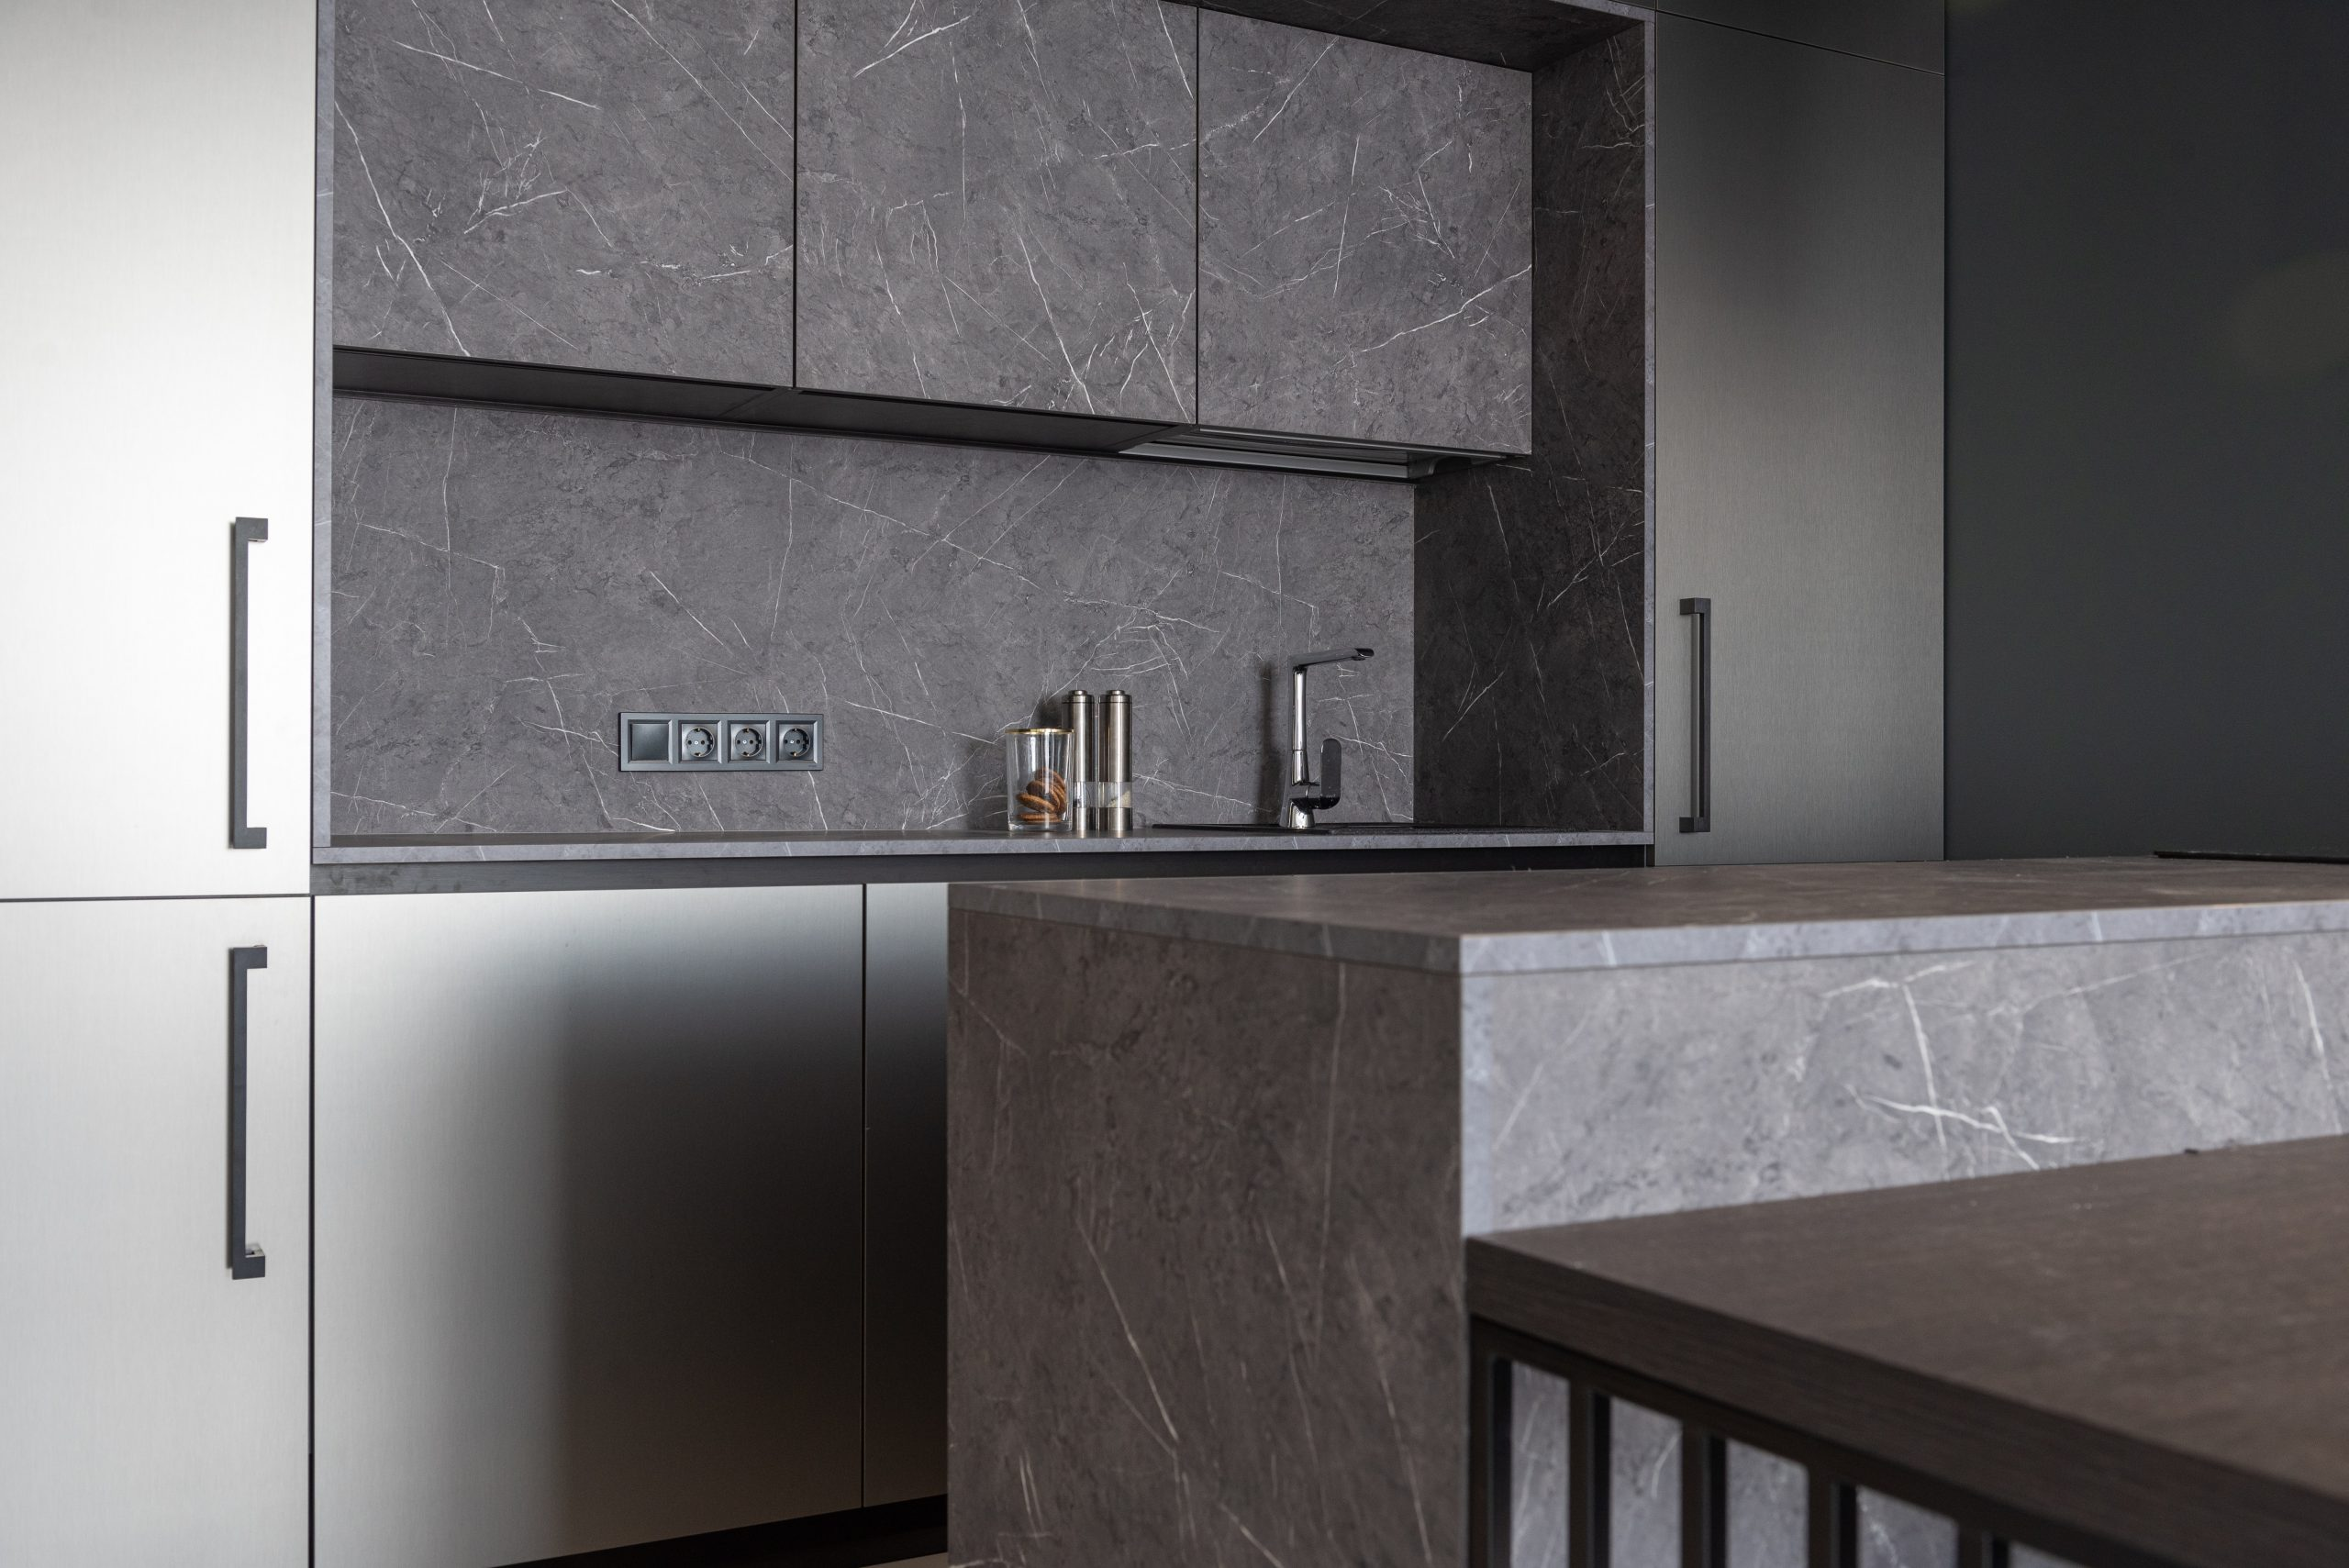 Choosing Between Tiled and Glass Kitchen Splashbacks: What to Know